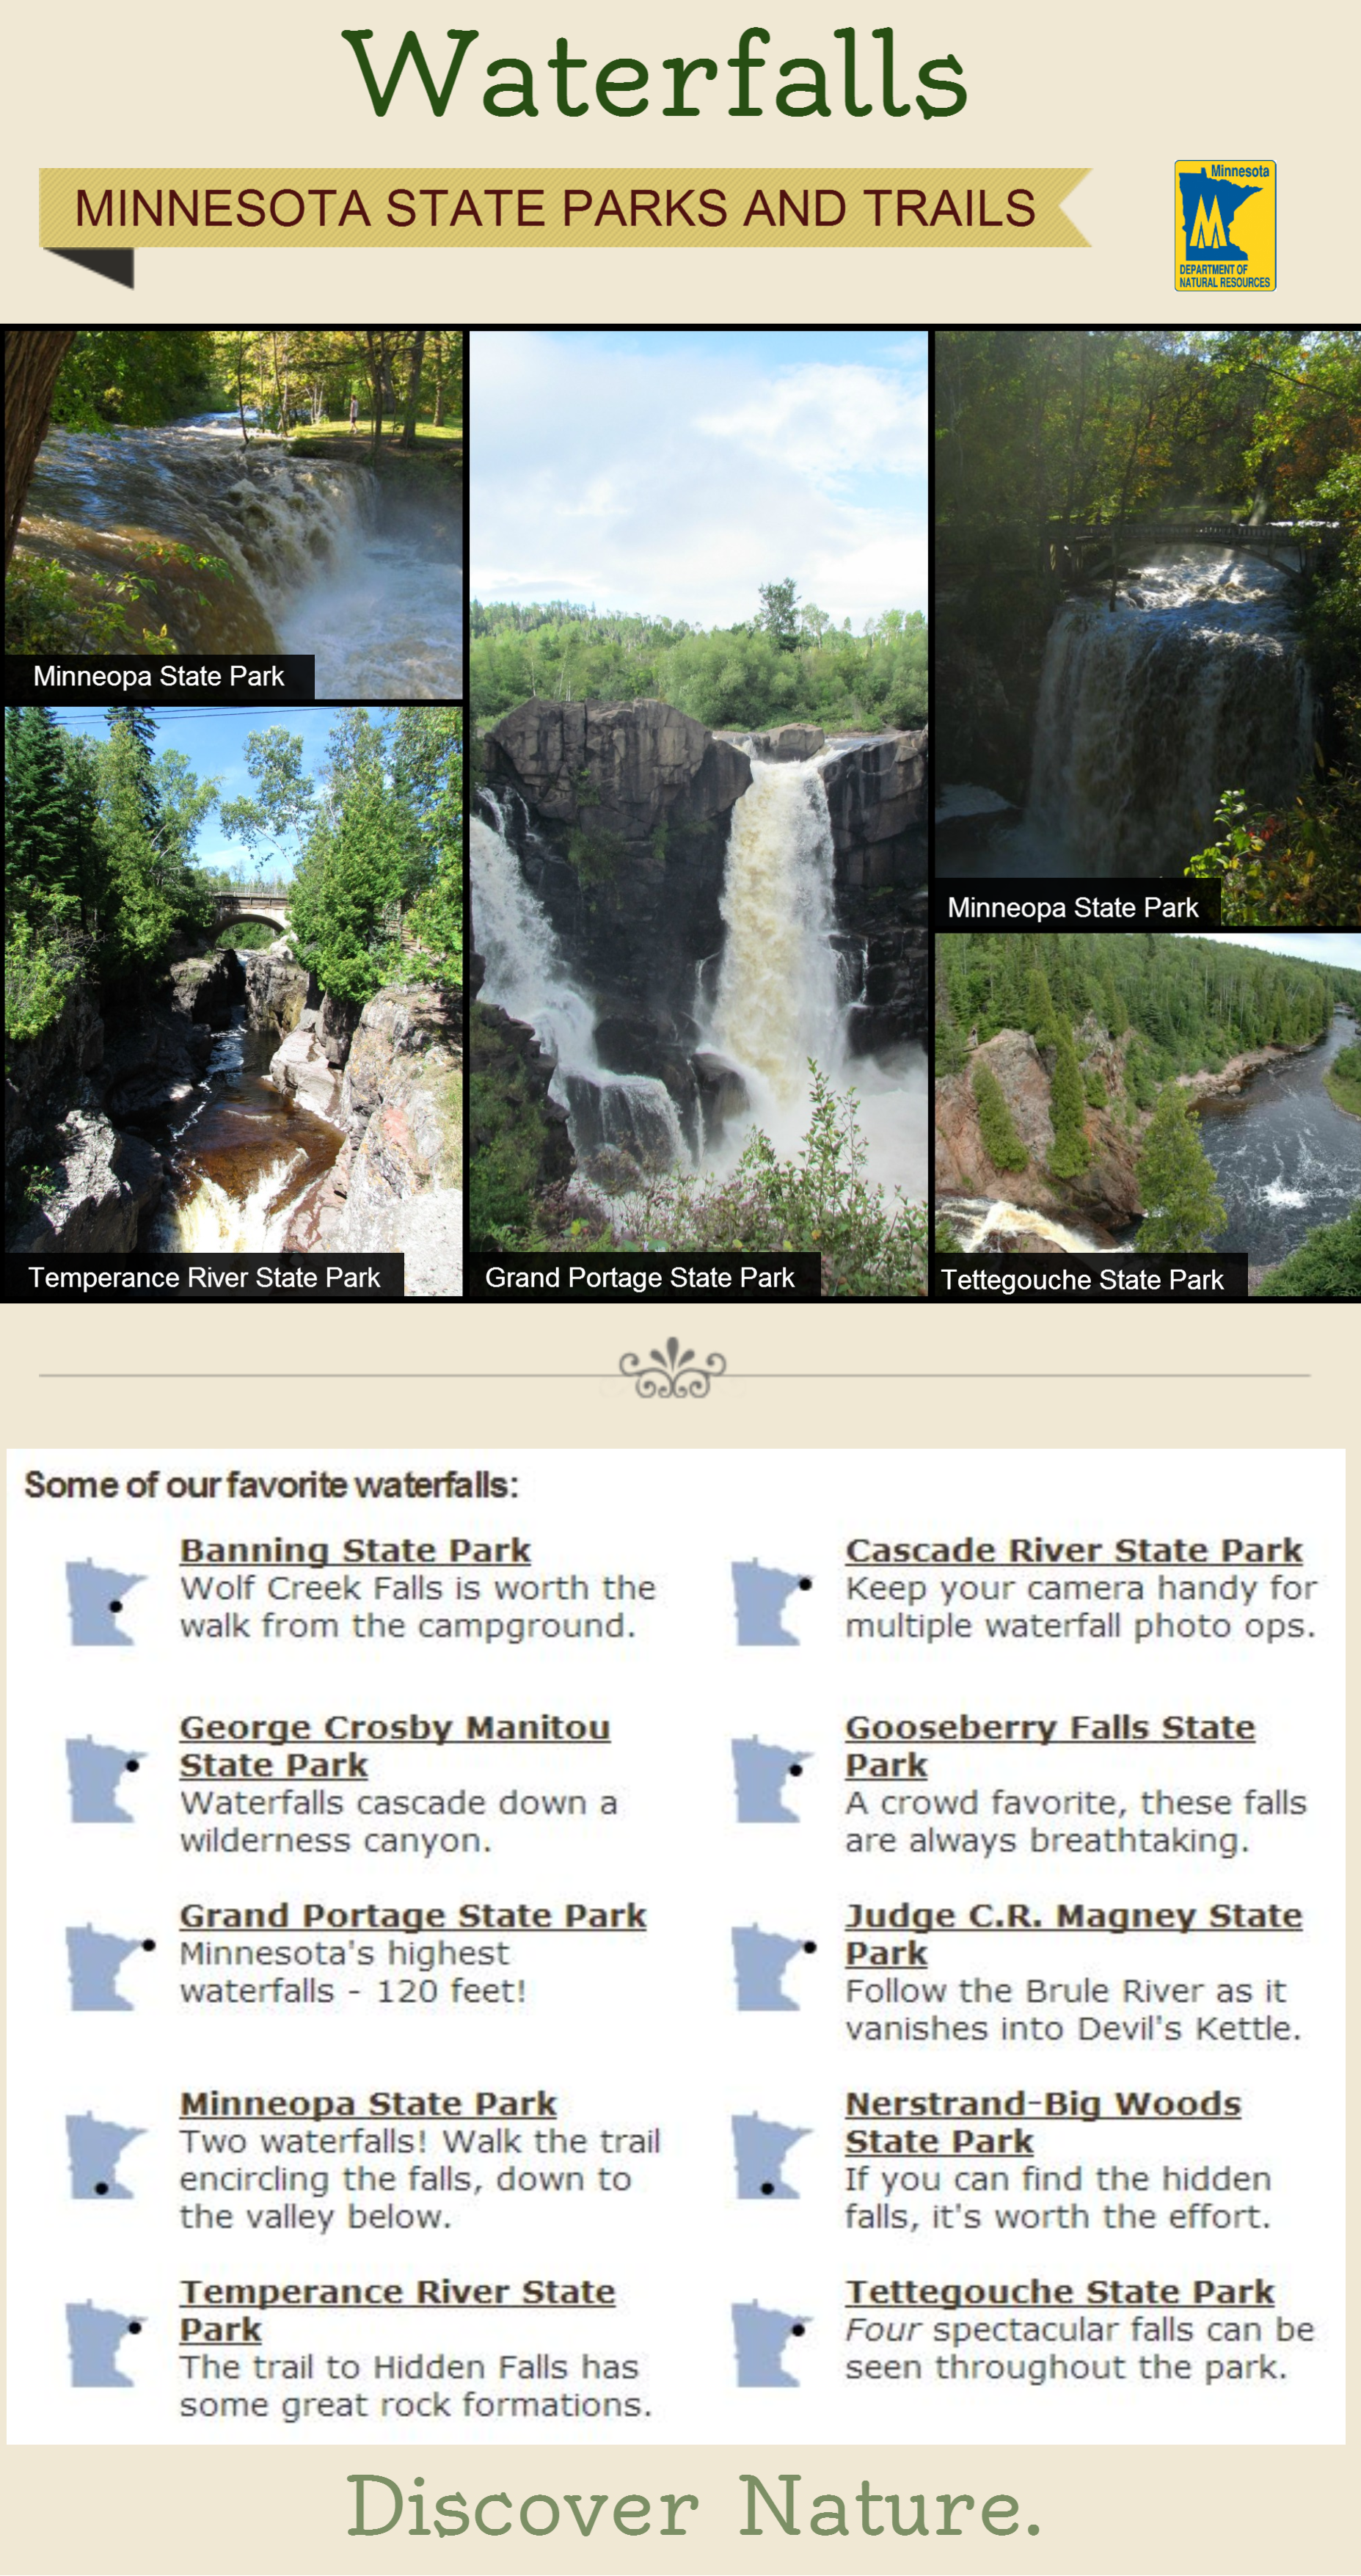 Waterfalls-minnesota-parks.png